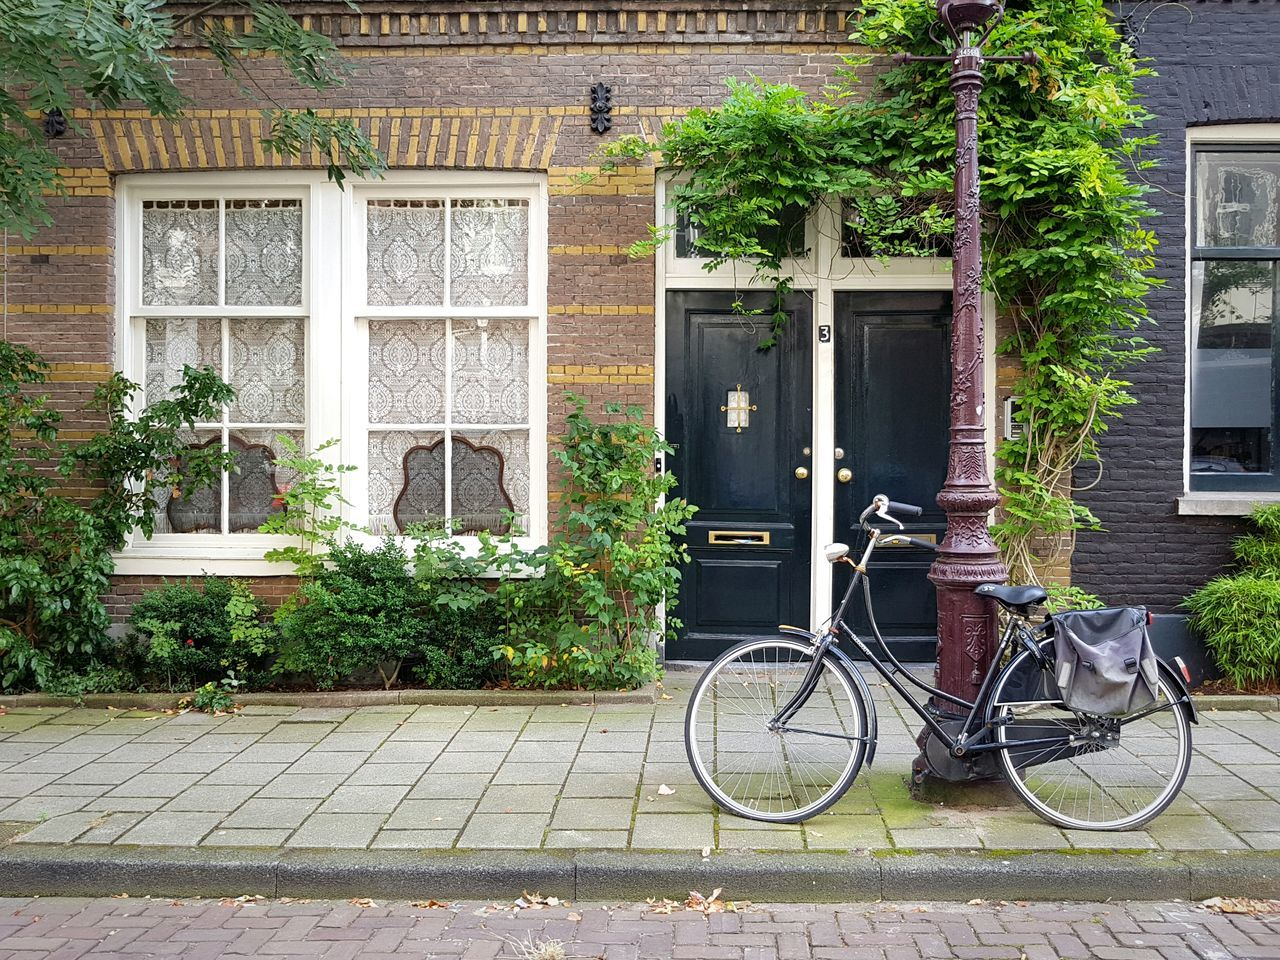 Window Bicycle Tree Building Exterior Transportation Mode Of Transport Architecture Built Structure Stationary No People Land Vehicle Outdoors Day House Green Color Ivy Houses And Windows Amsterdam Urban Geometry Traditional Typical EyeEm Best Shots Traveling Parallel CyclingUnites